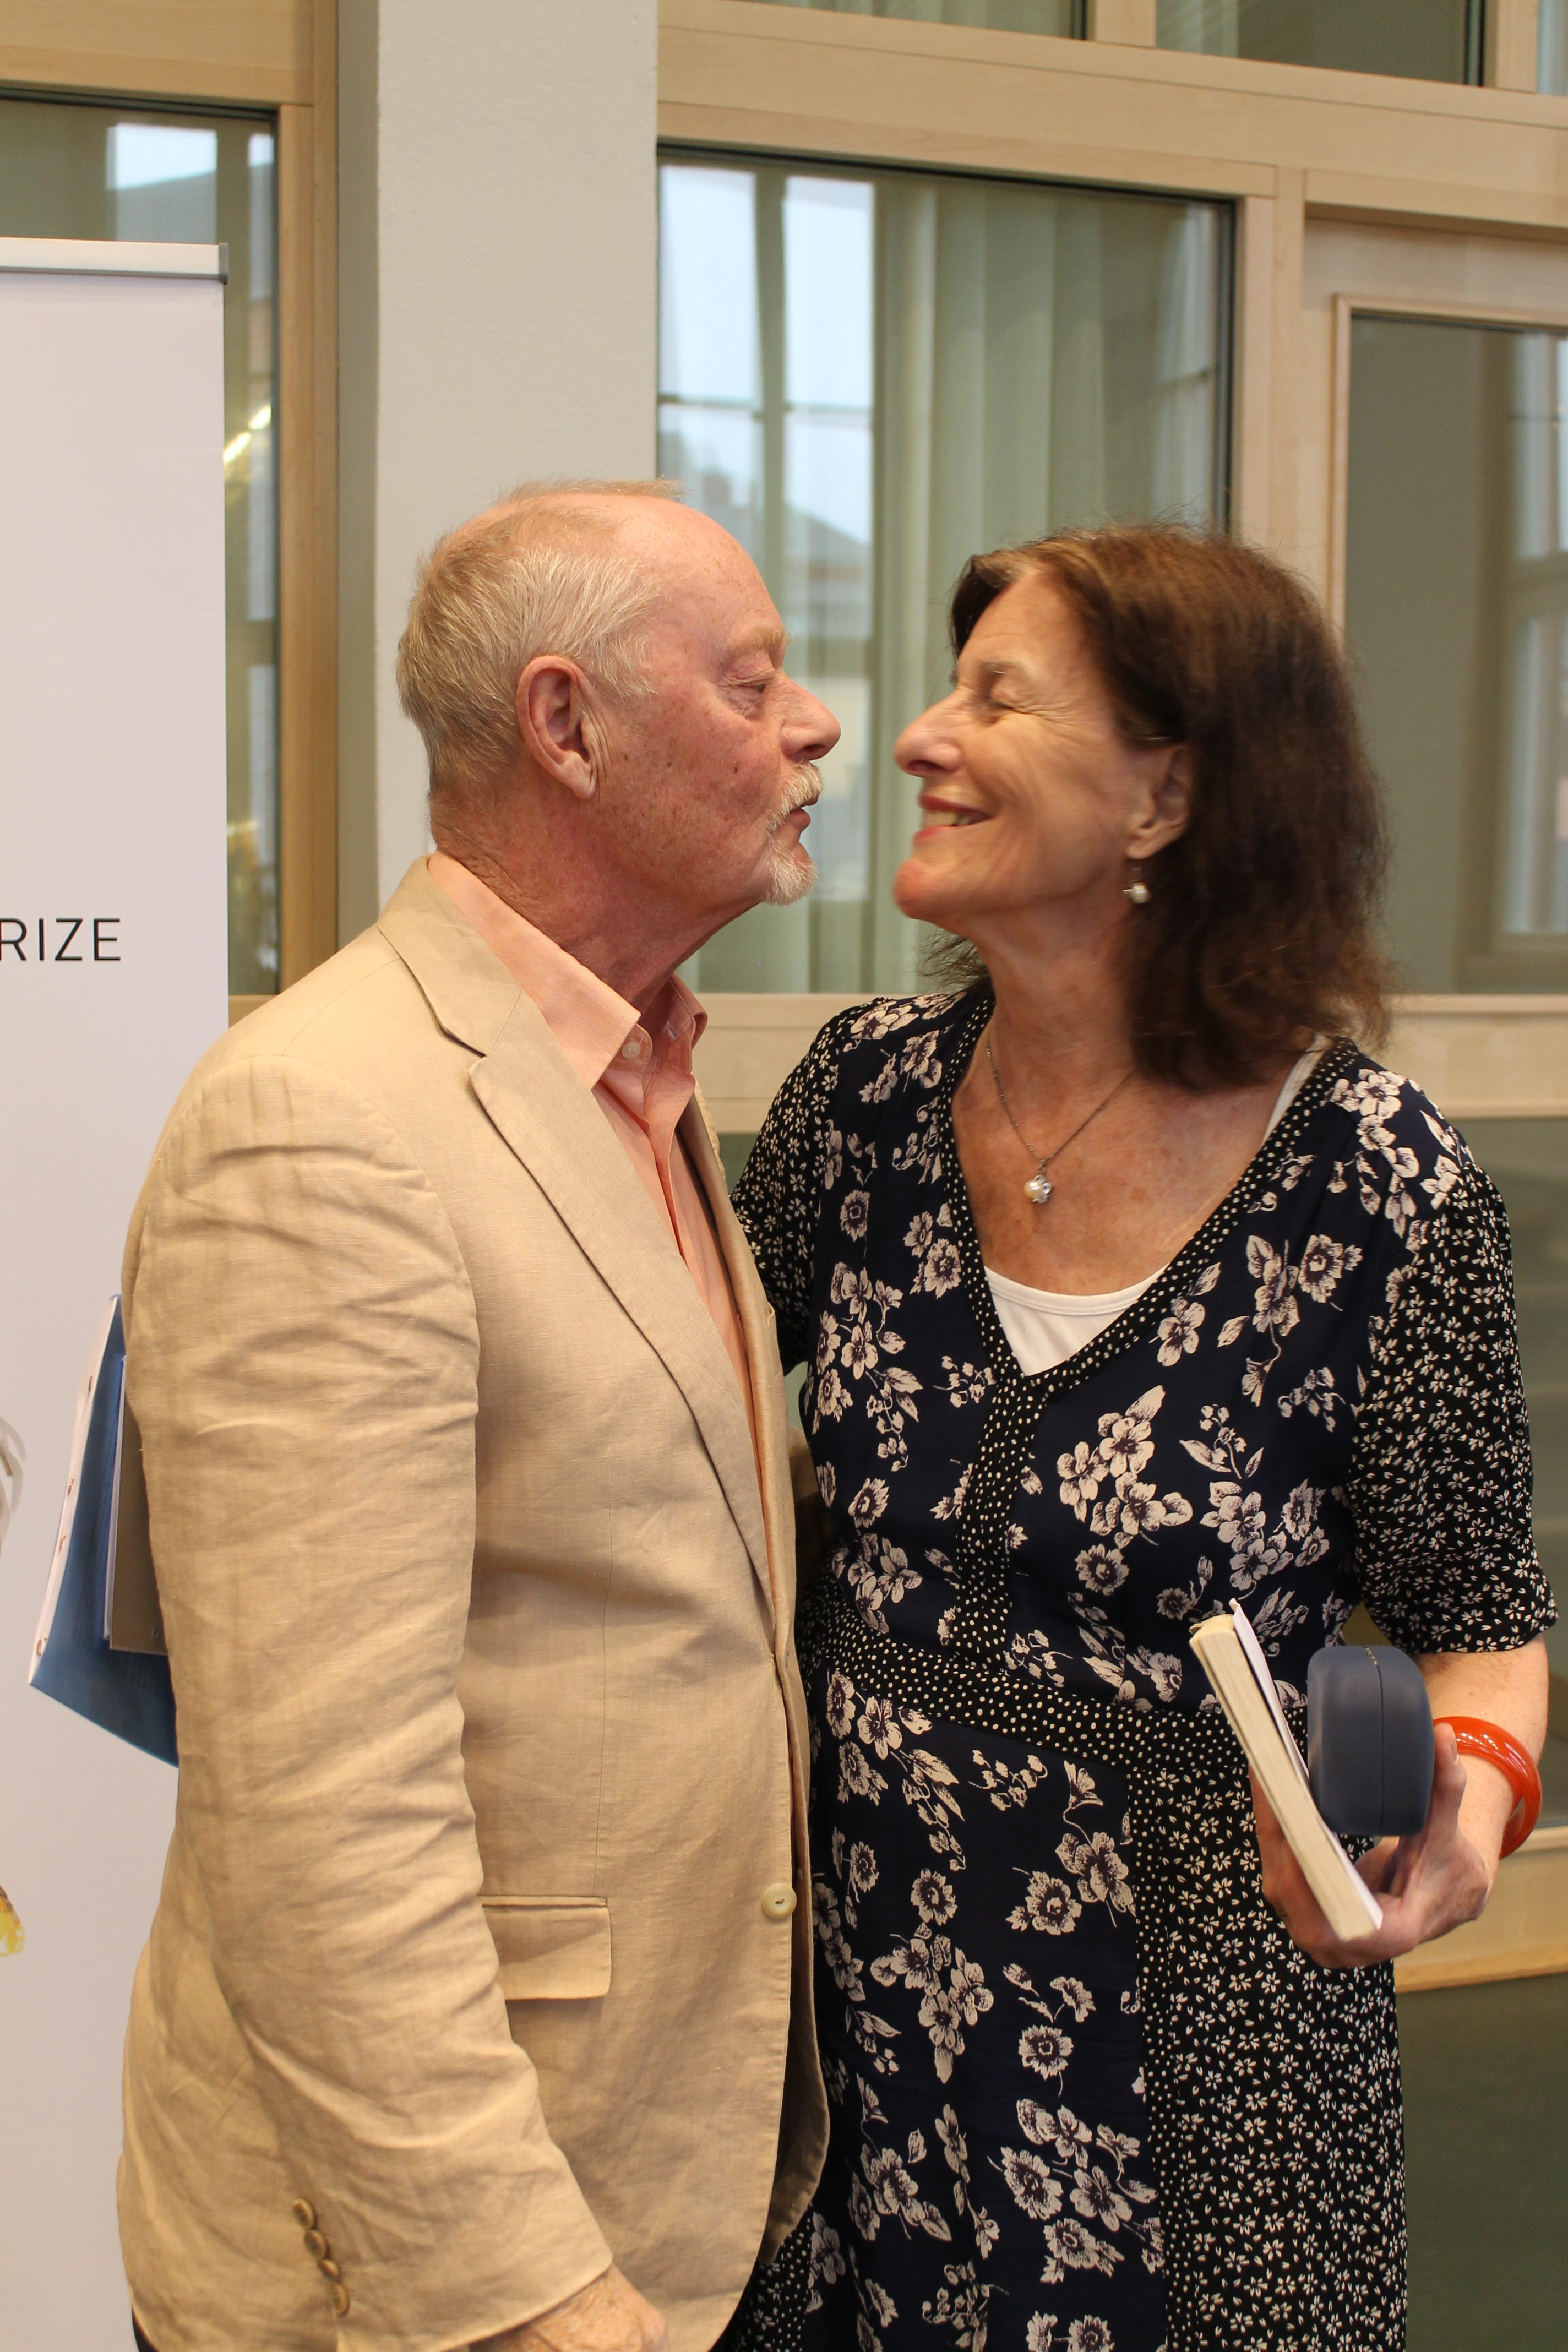 In her lecture, Barbro Lewin said that her favourite from among the 20 Skytte professors she wrote about is her husband and Skytte professor emeritus, Leif Lewin.